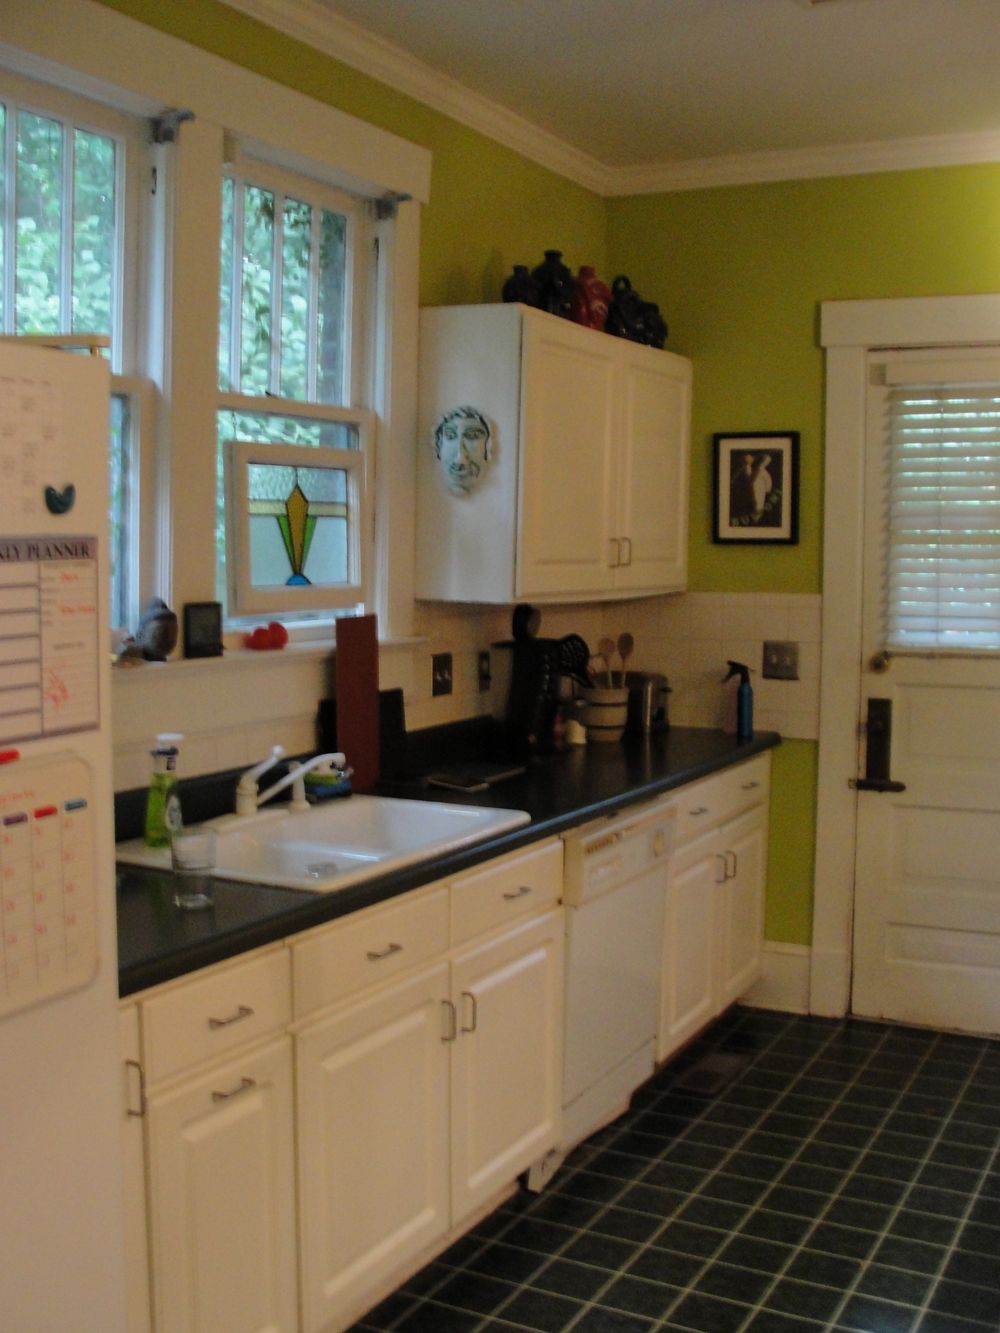 Kitchens With White Cabinets And Green Walls White Kitchen Cabinets Green Walls  Dolist  Pinterest  Green